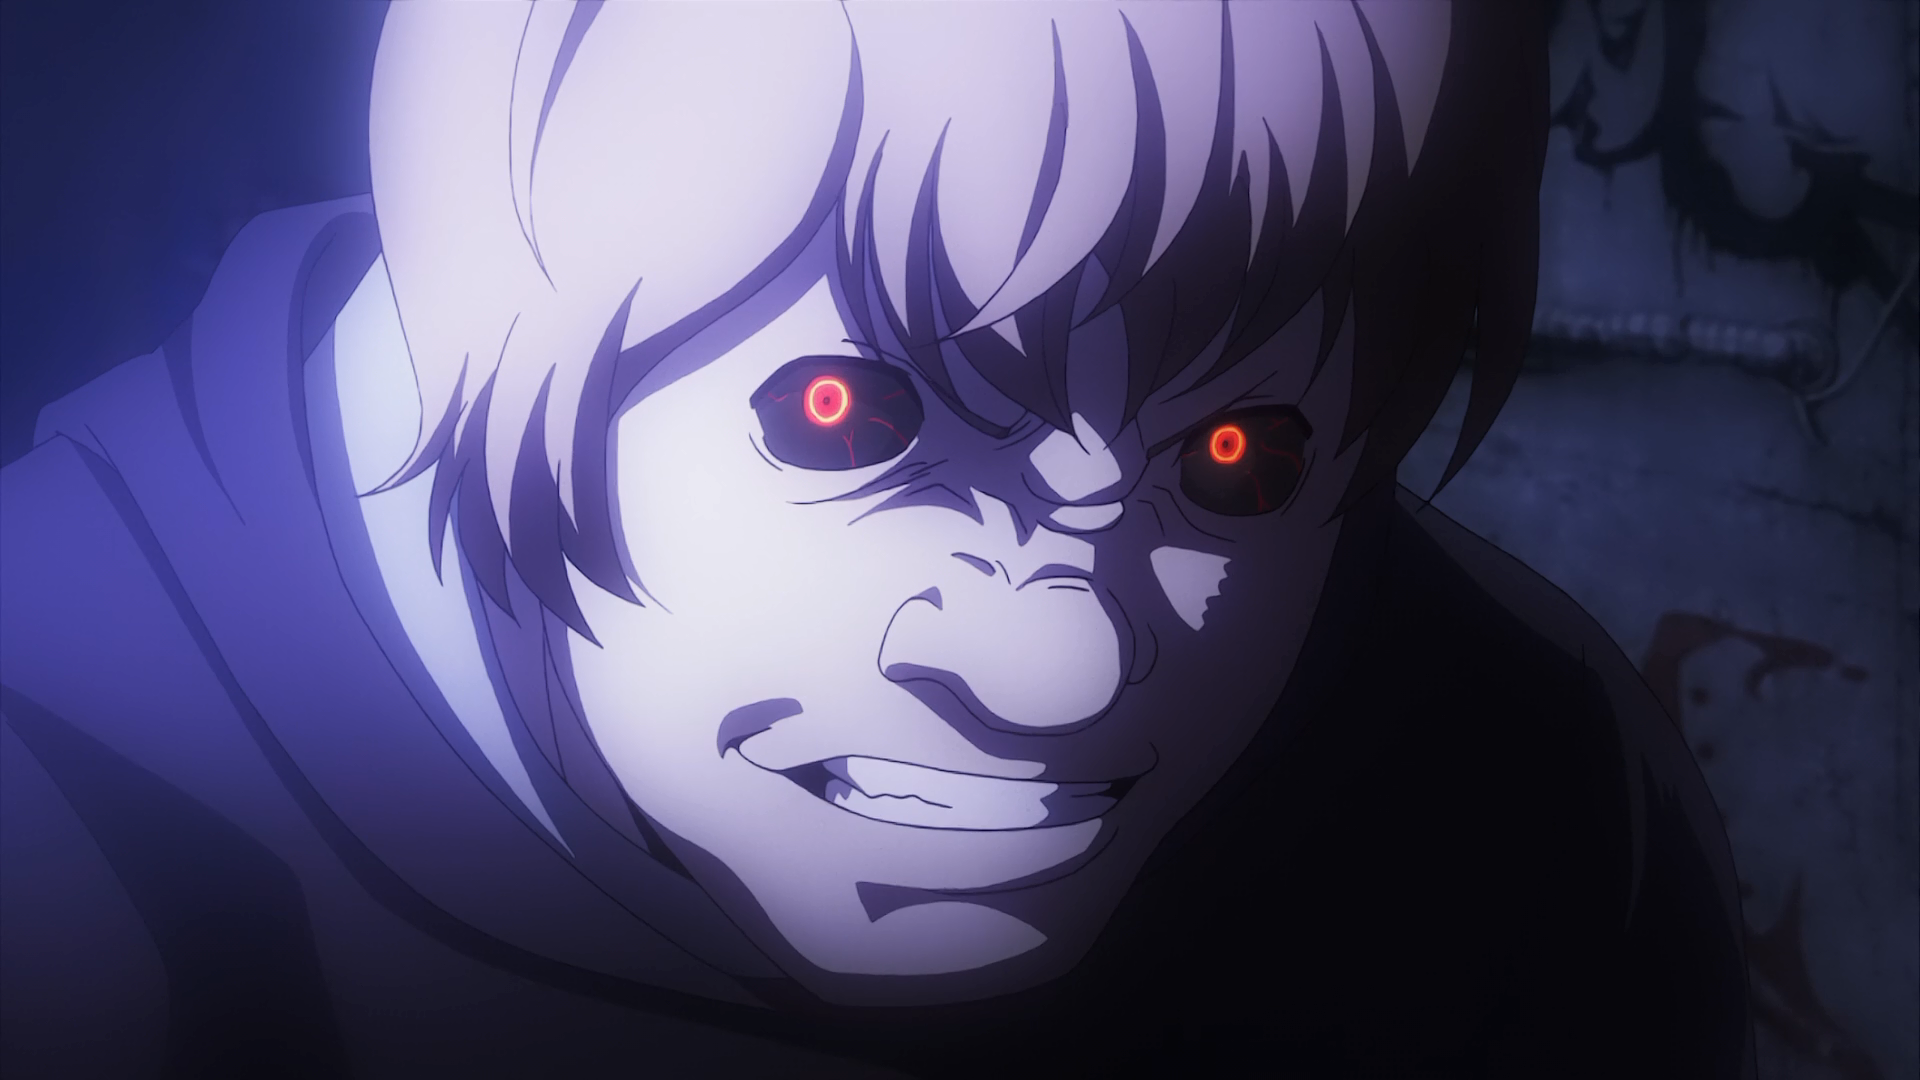 Datei:Young koma devil ape.png